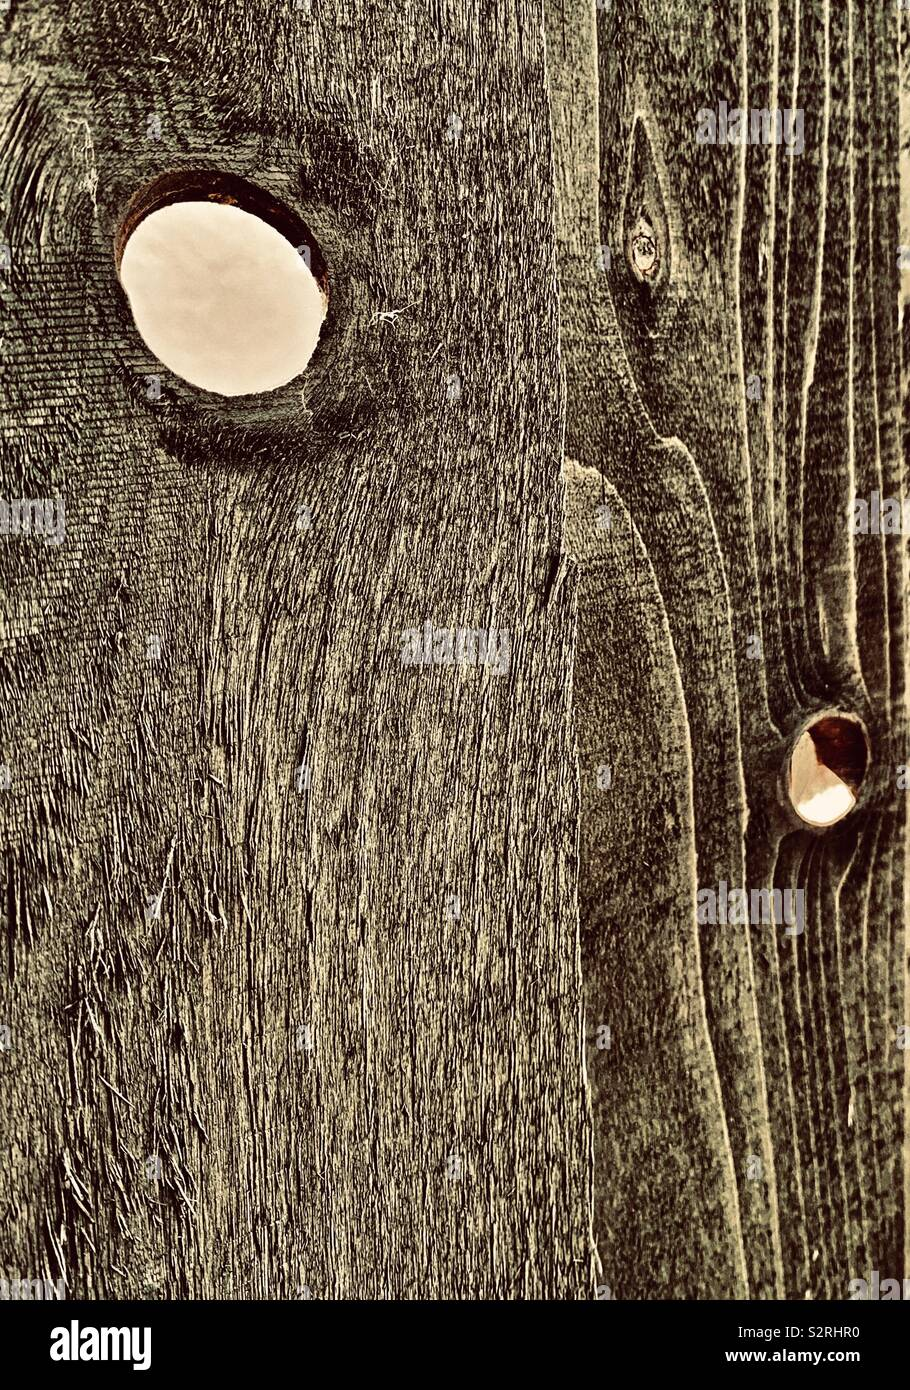 Section of grainy wooden fence with two knot holes - Stock Image